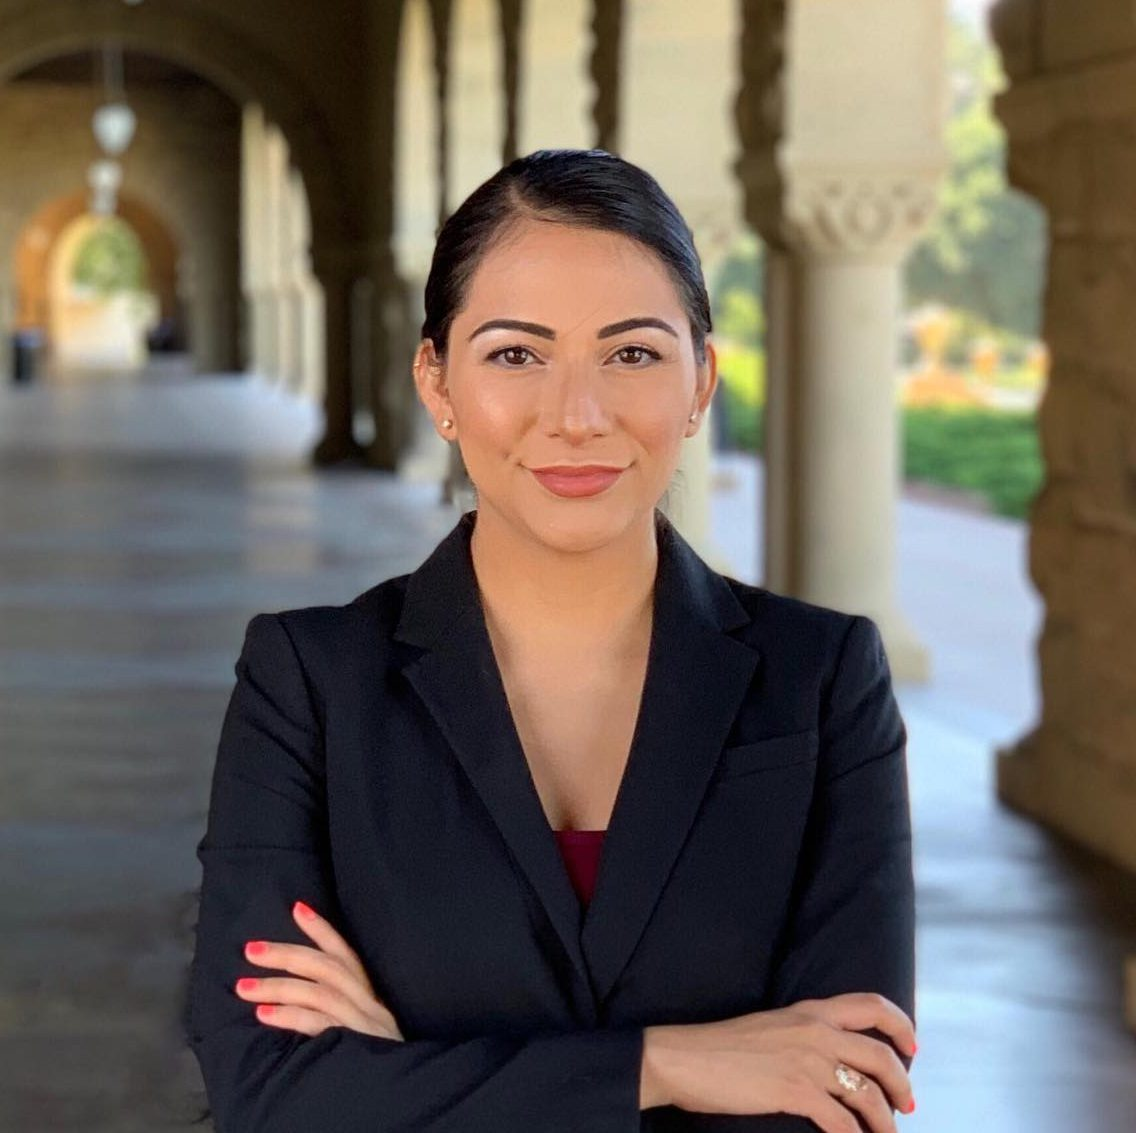 Professional head shot of Natalie Nevarez, dark haired woman in blazer, arms folded and smiling at camera.